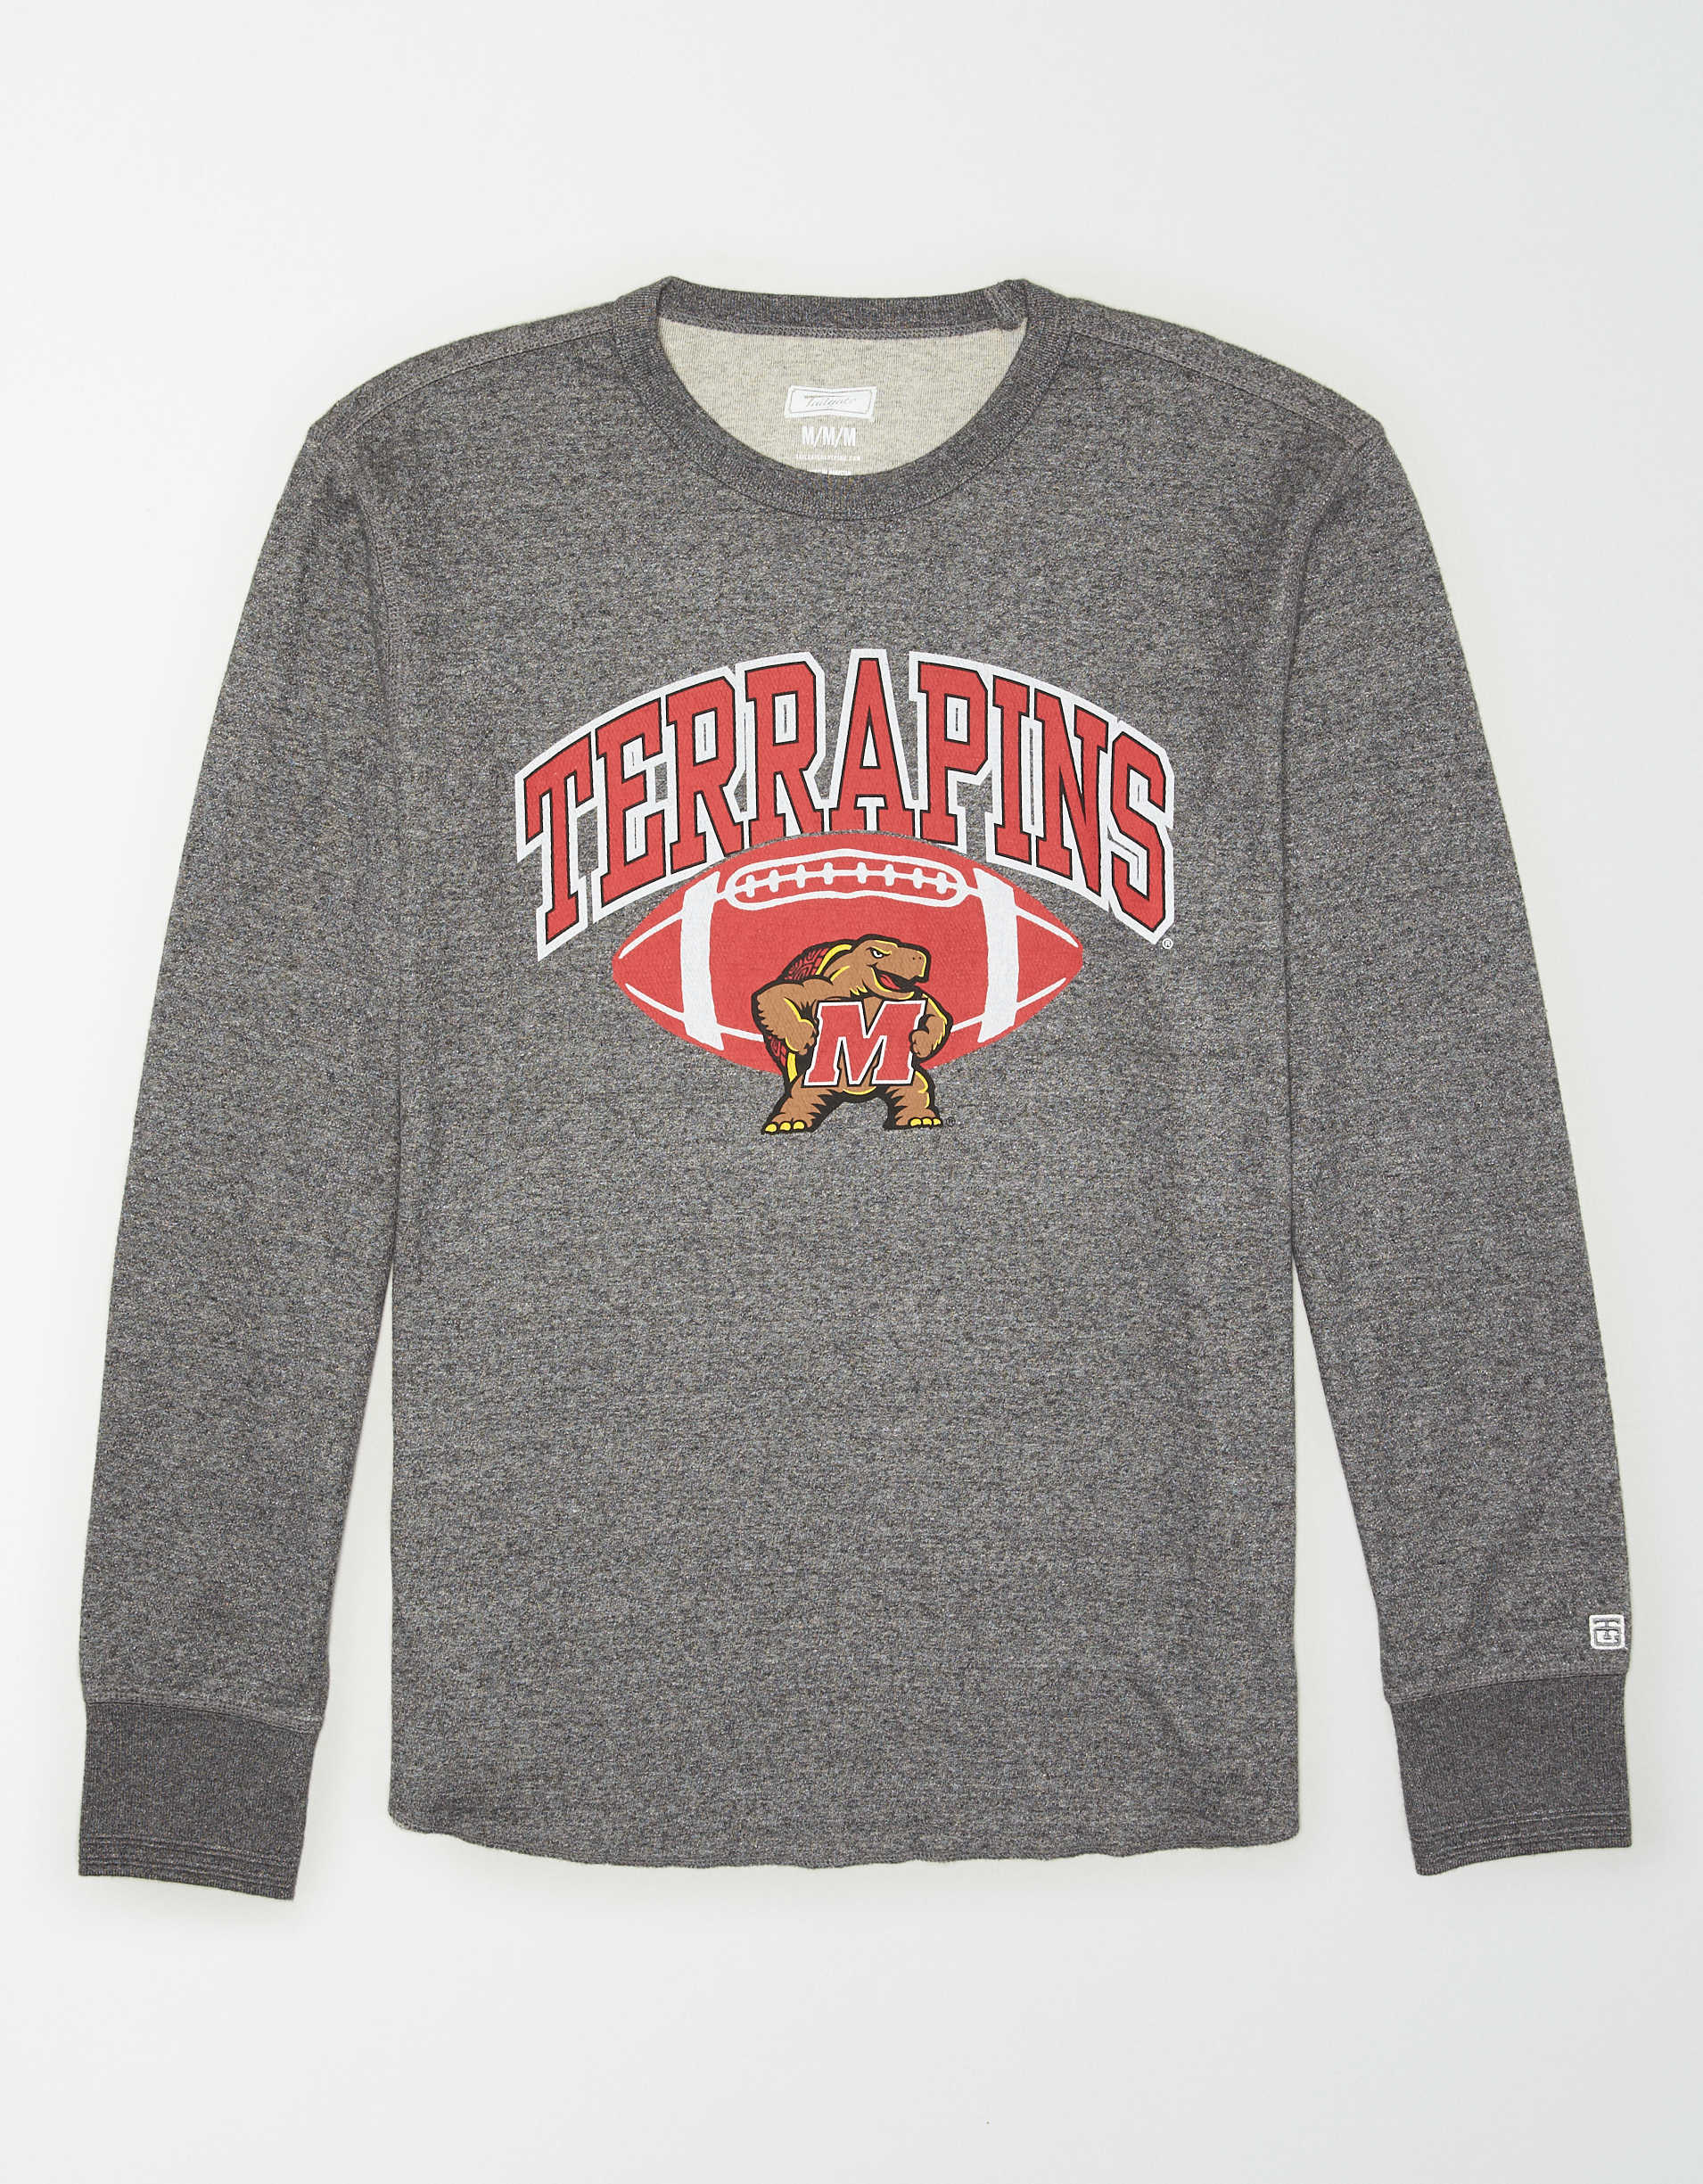 Tailgate Men's Maryland Terrapins Thermal Shirt